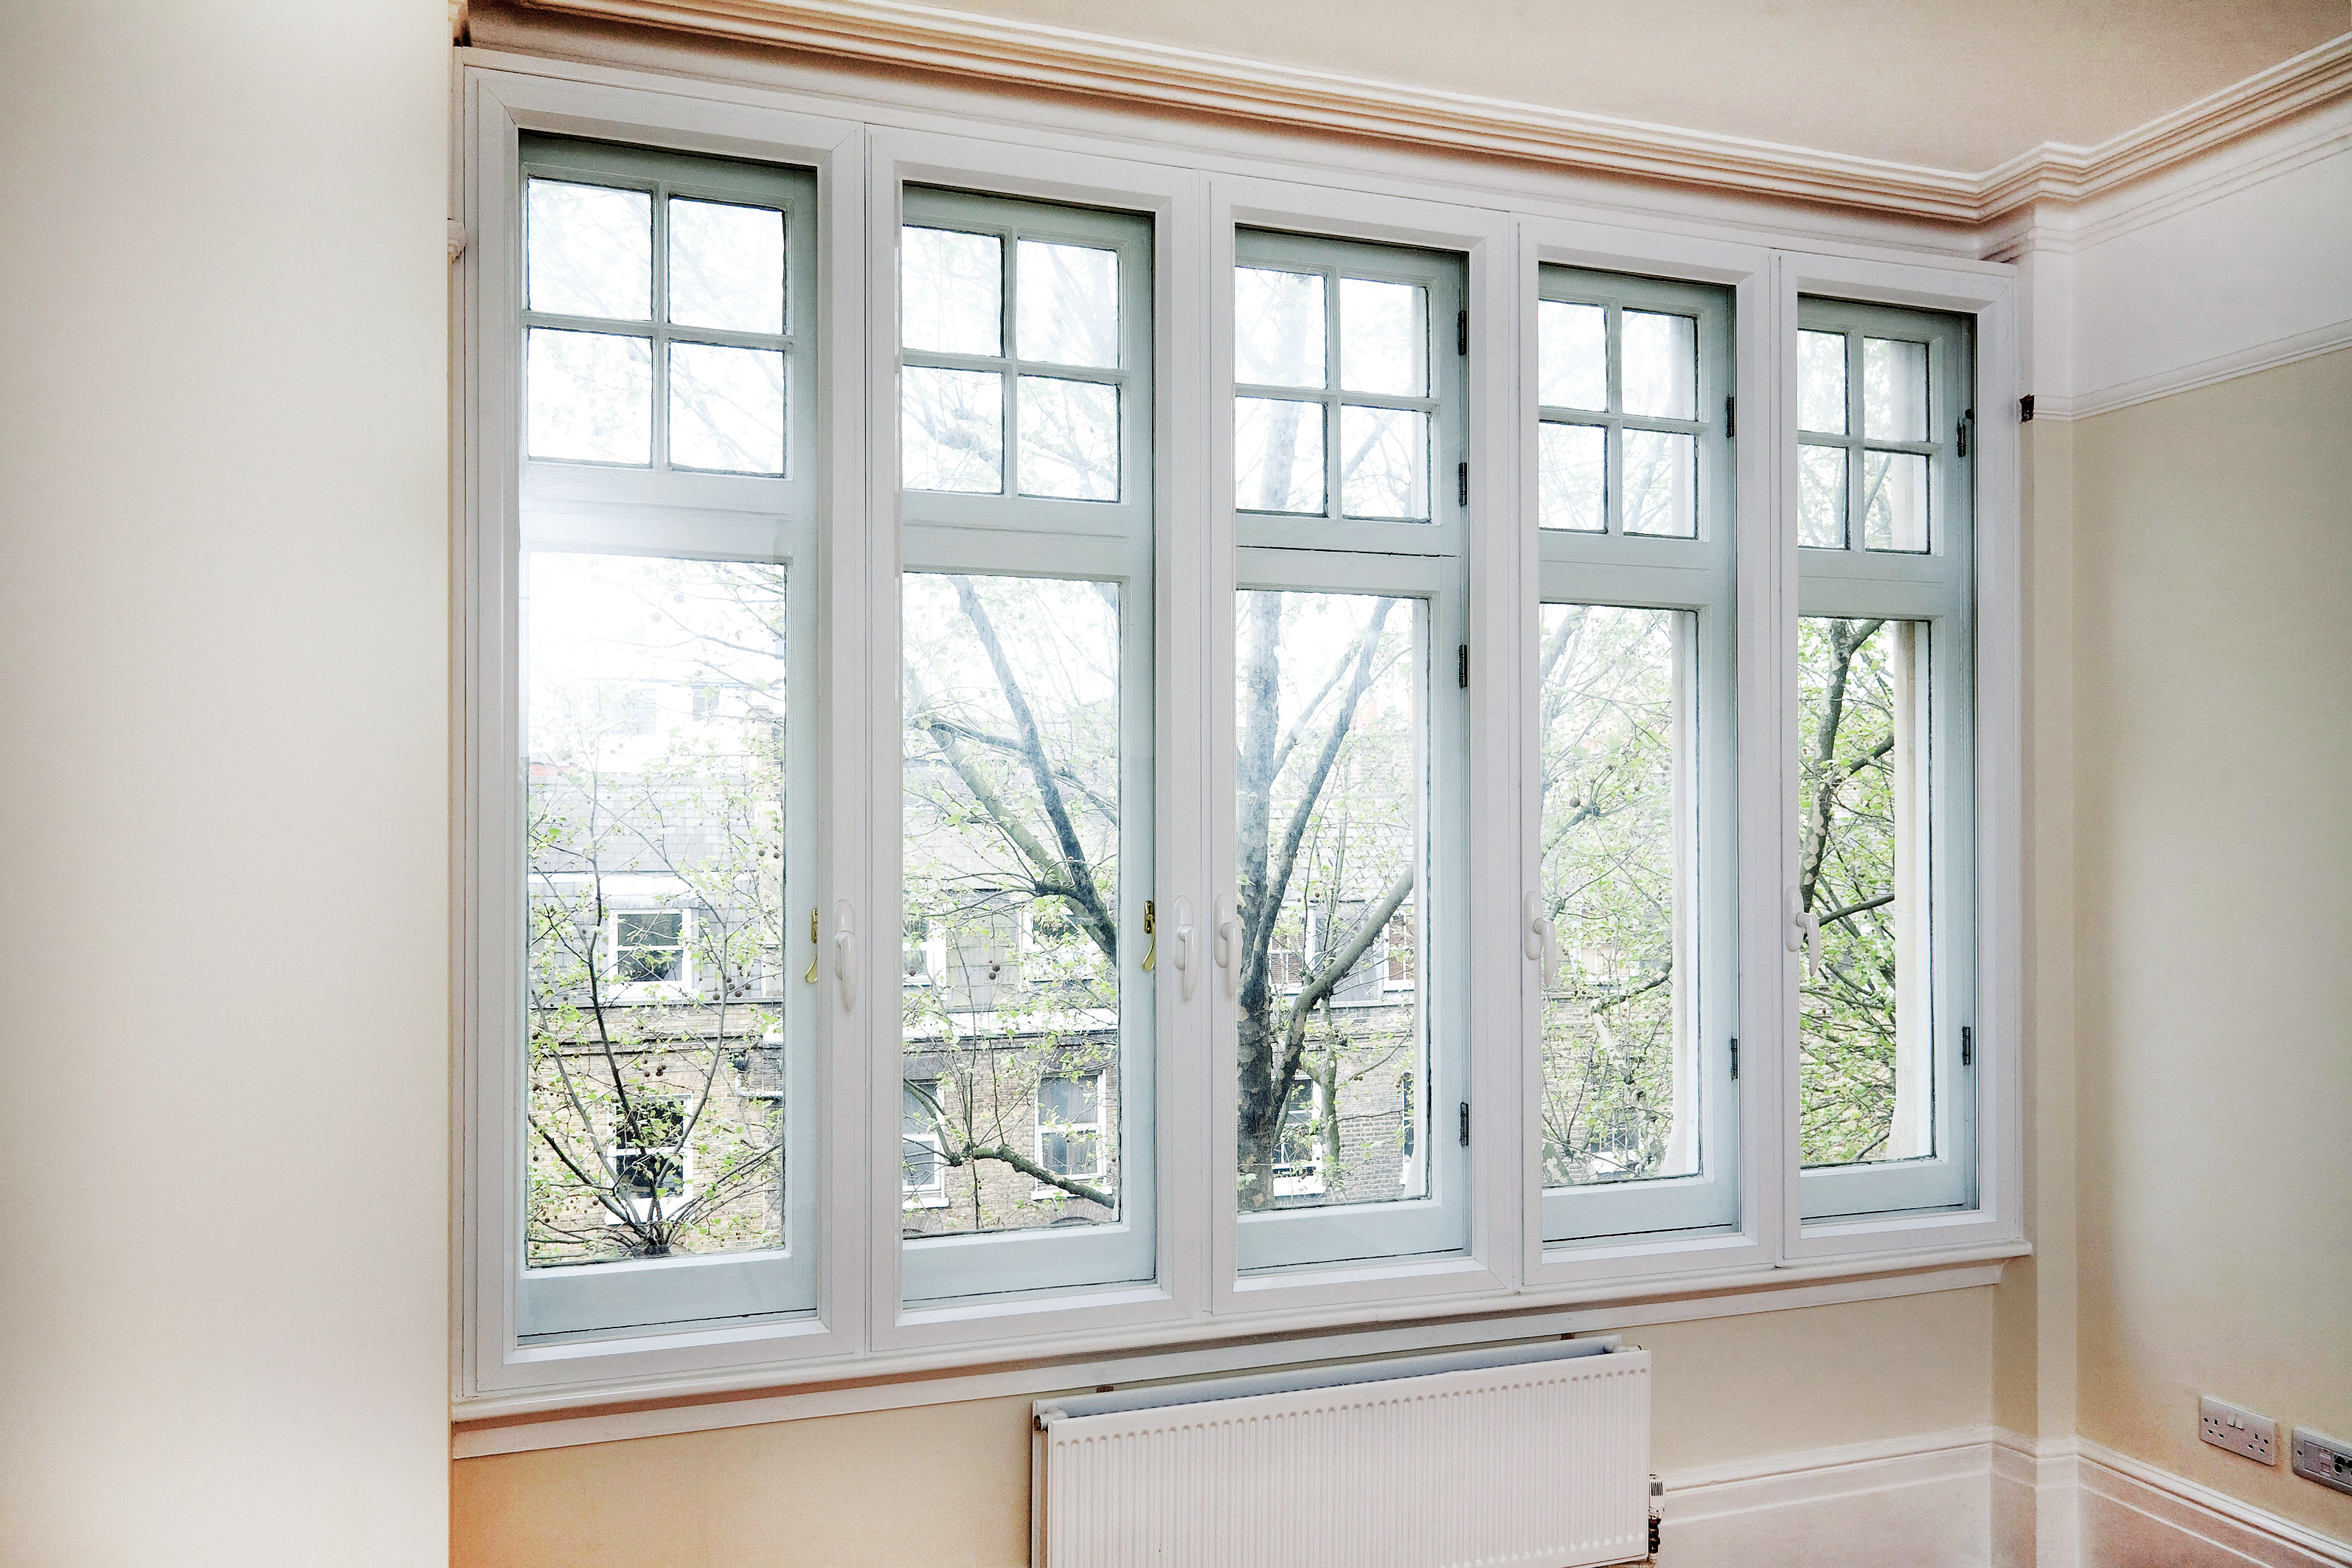 Heritage secondary glazing